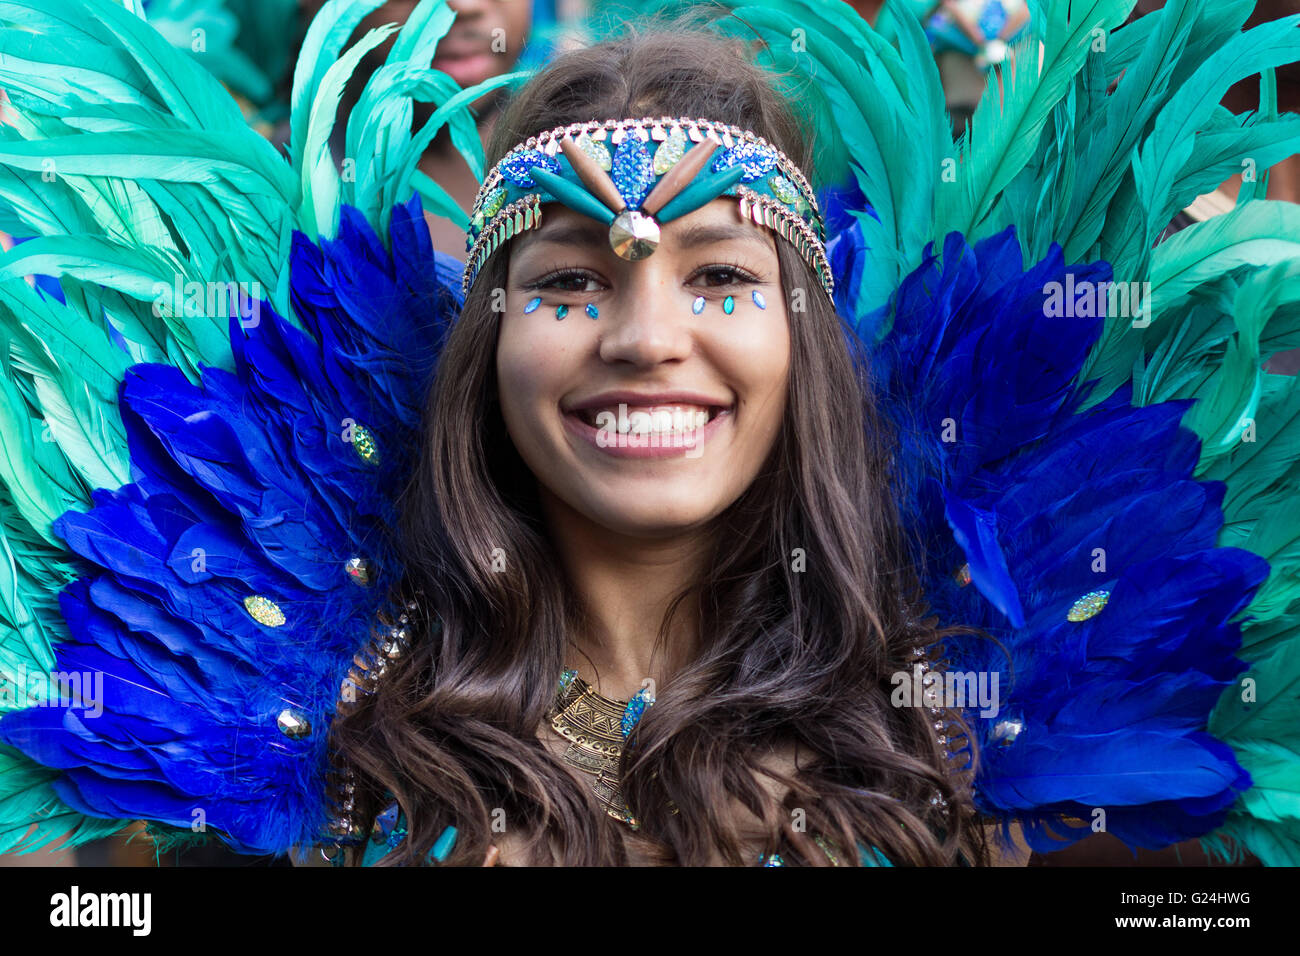 Berlin, Allemagne Le 15 mai 2016 : Beautiful Girl in costume smiling on Carnaval des Cultures (Karneval der Photo Stock